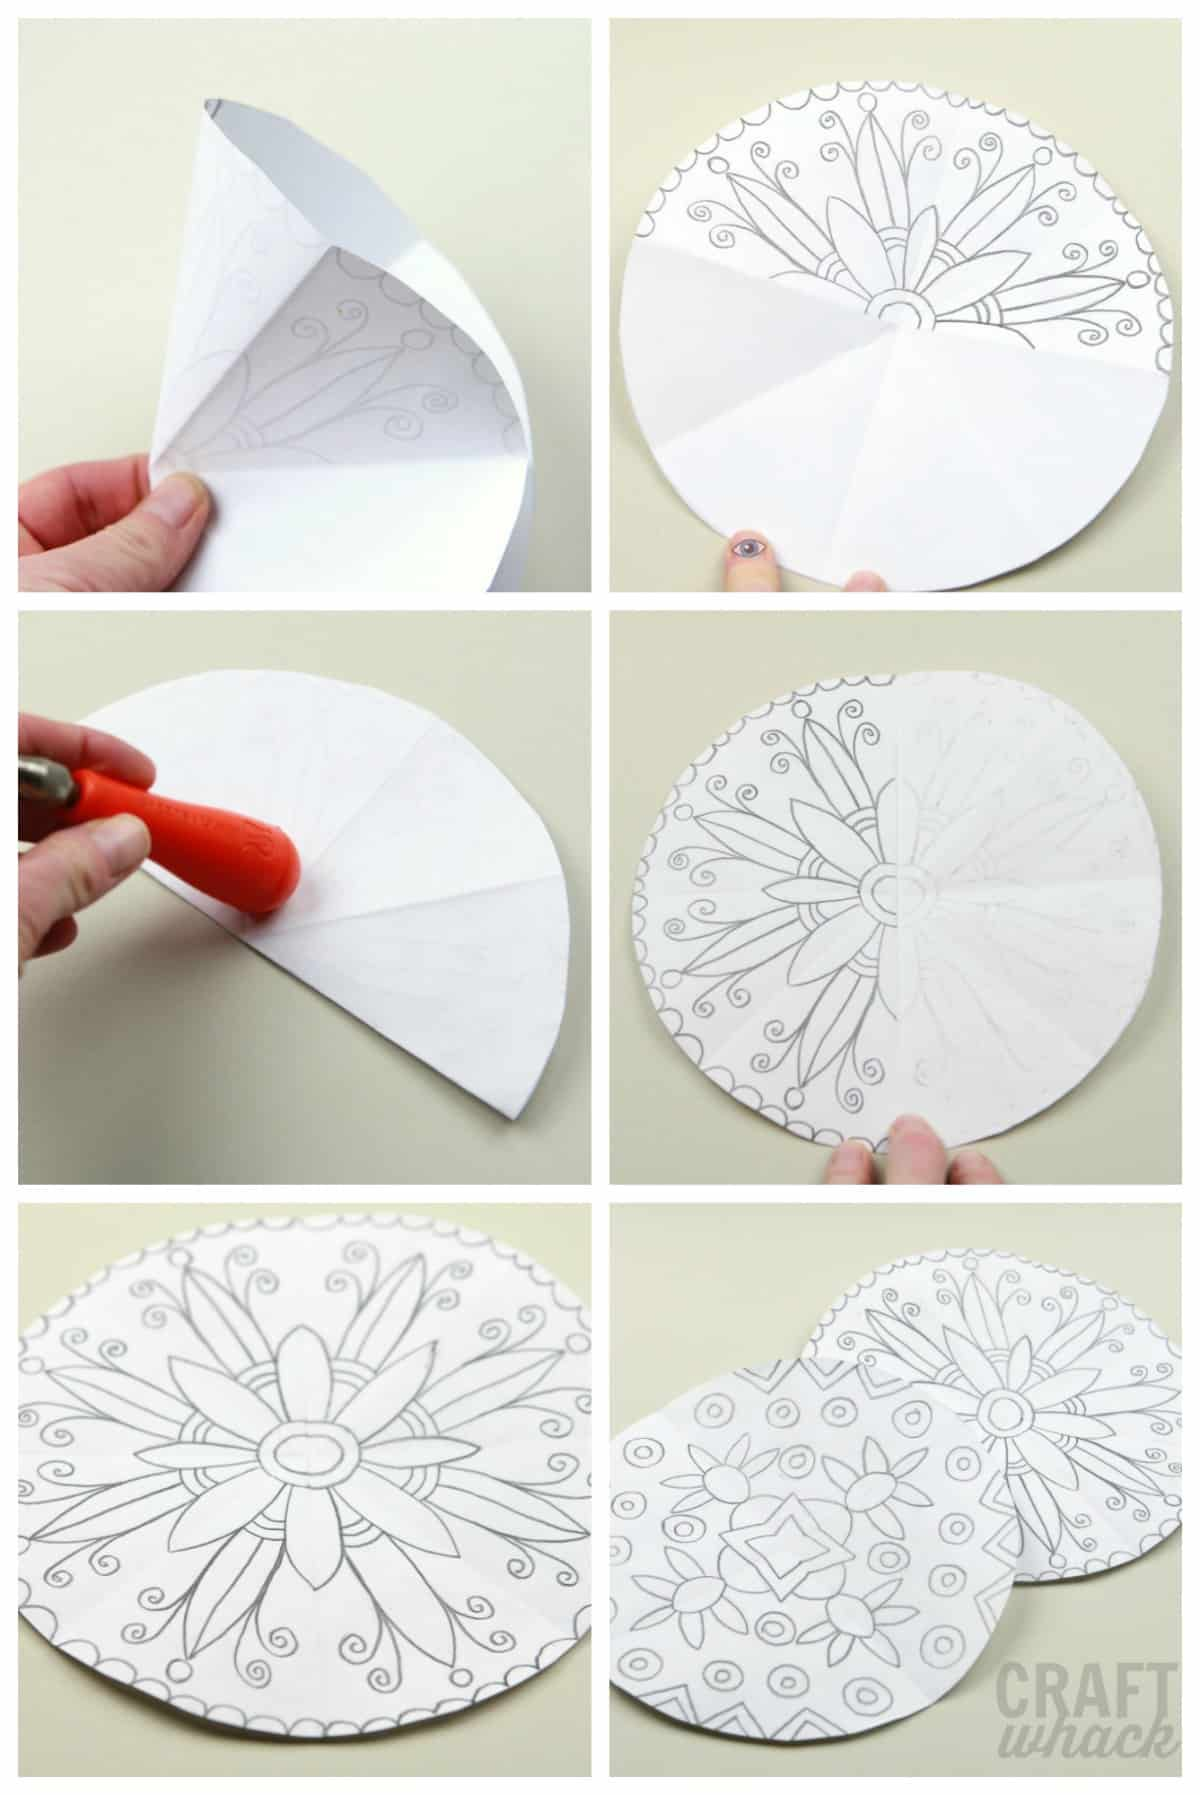 how to draw mandalas steps